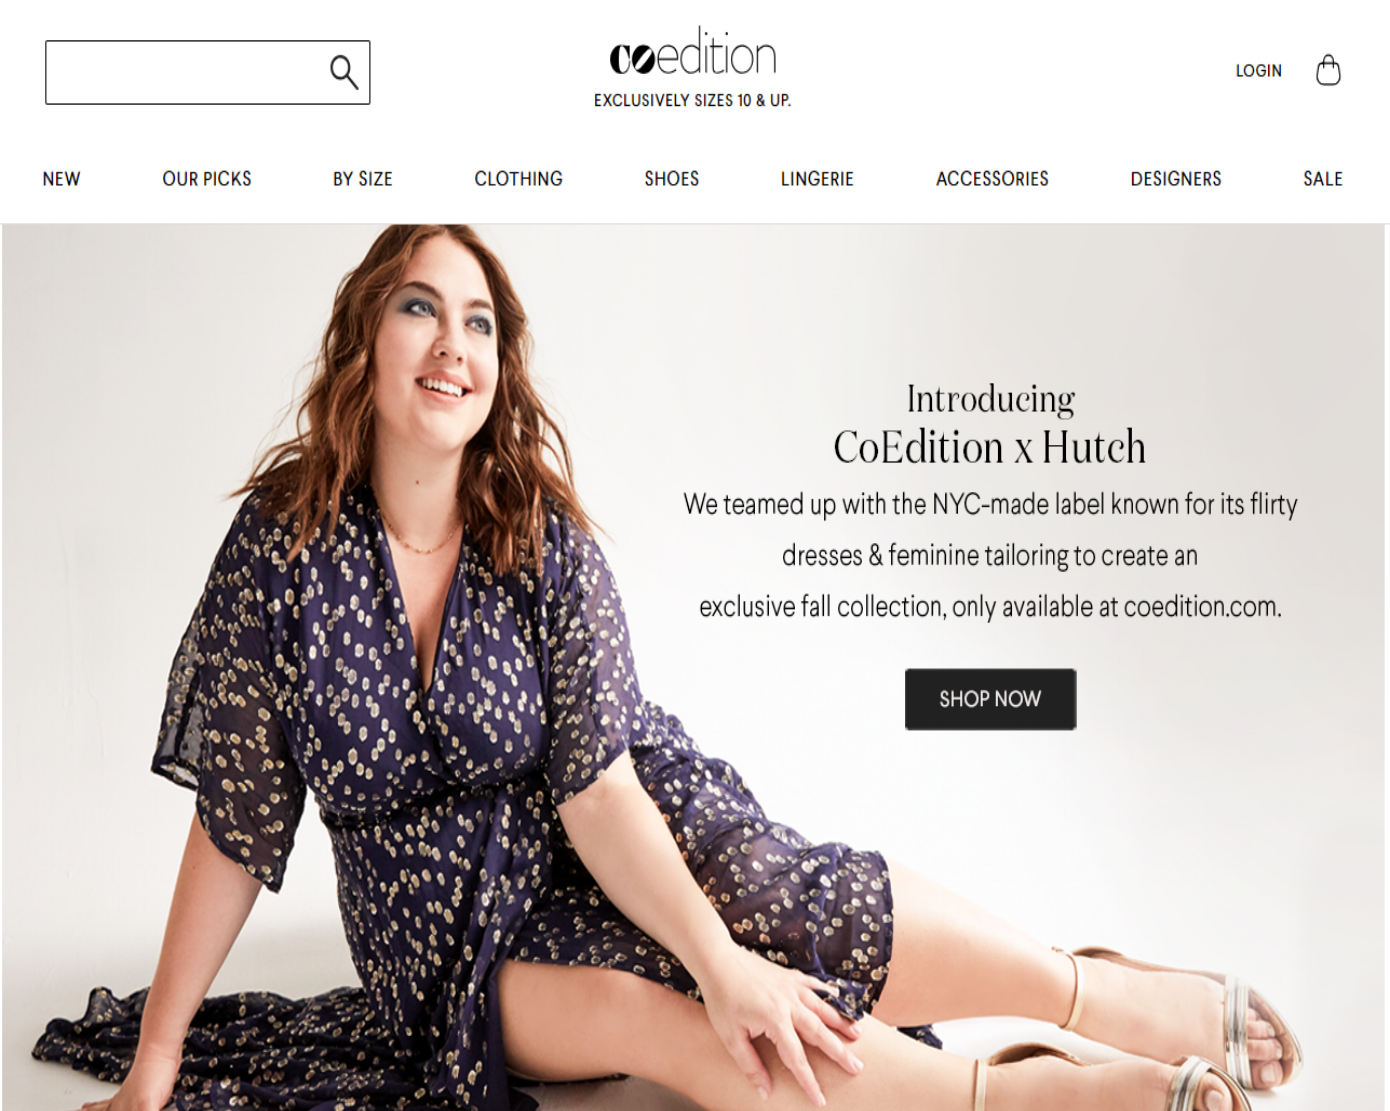 CoEdition - racked - This New Site Could Be the Shopbop of Plus-Size for all sizes 10 and up